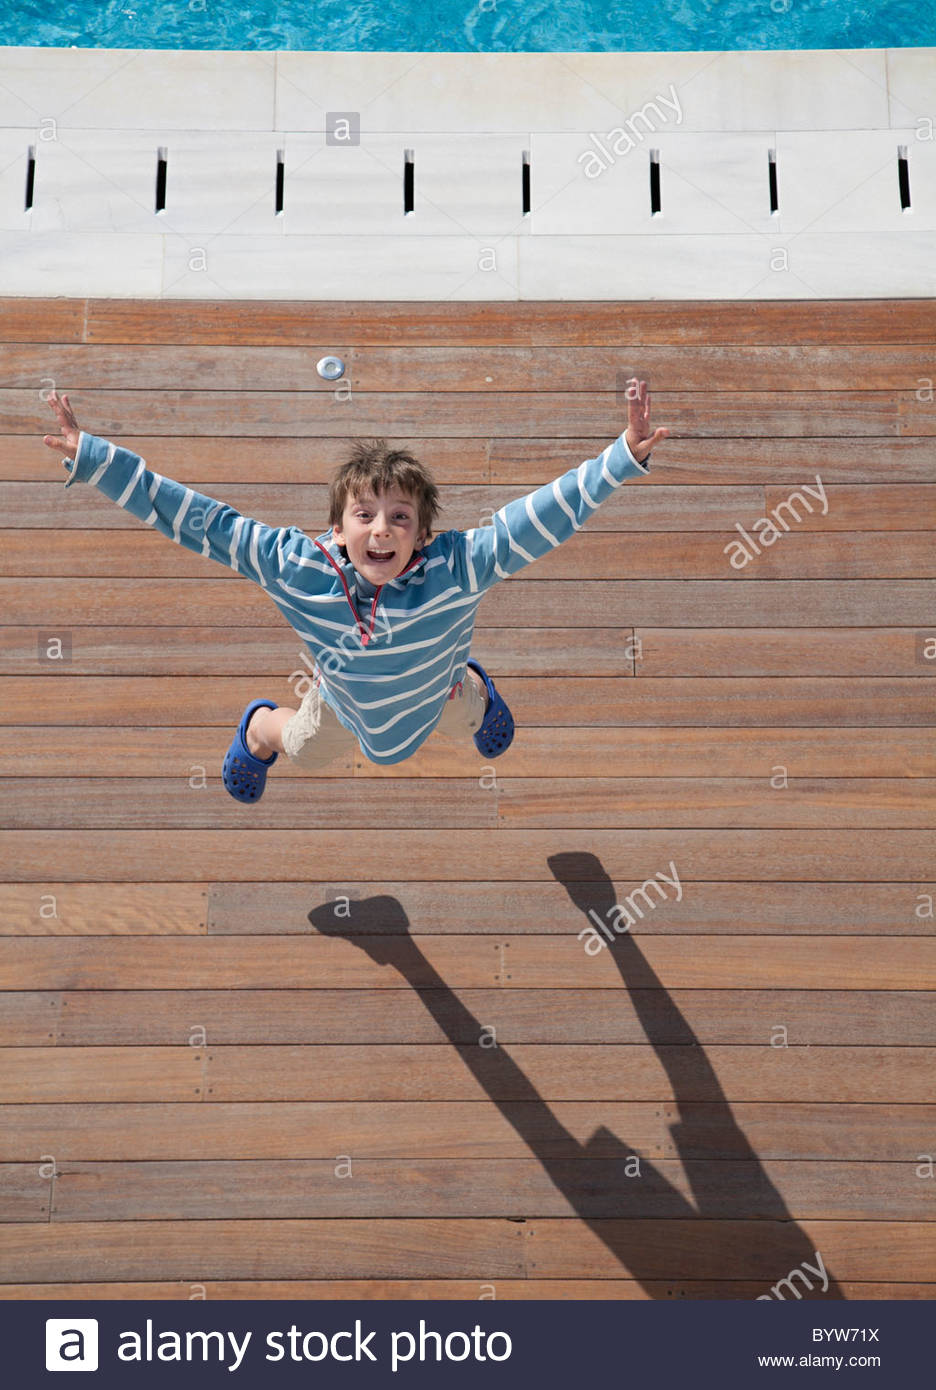 Boy (8-10) leaping into air, aerial view - Stock Image